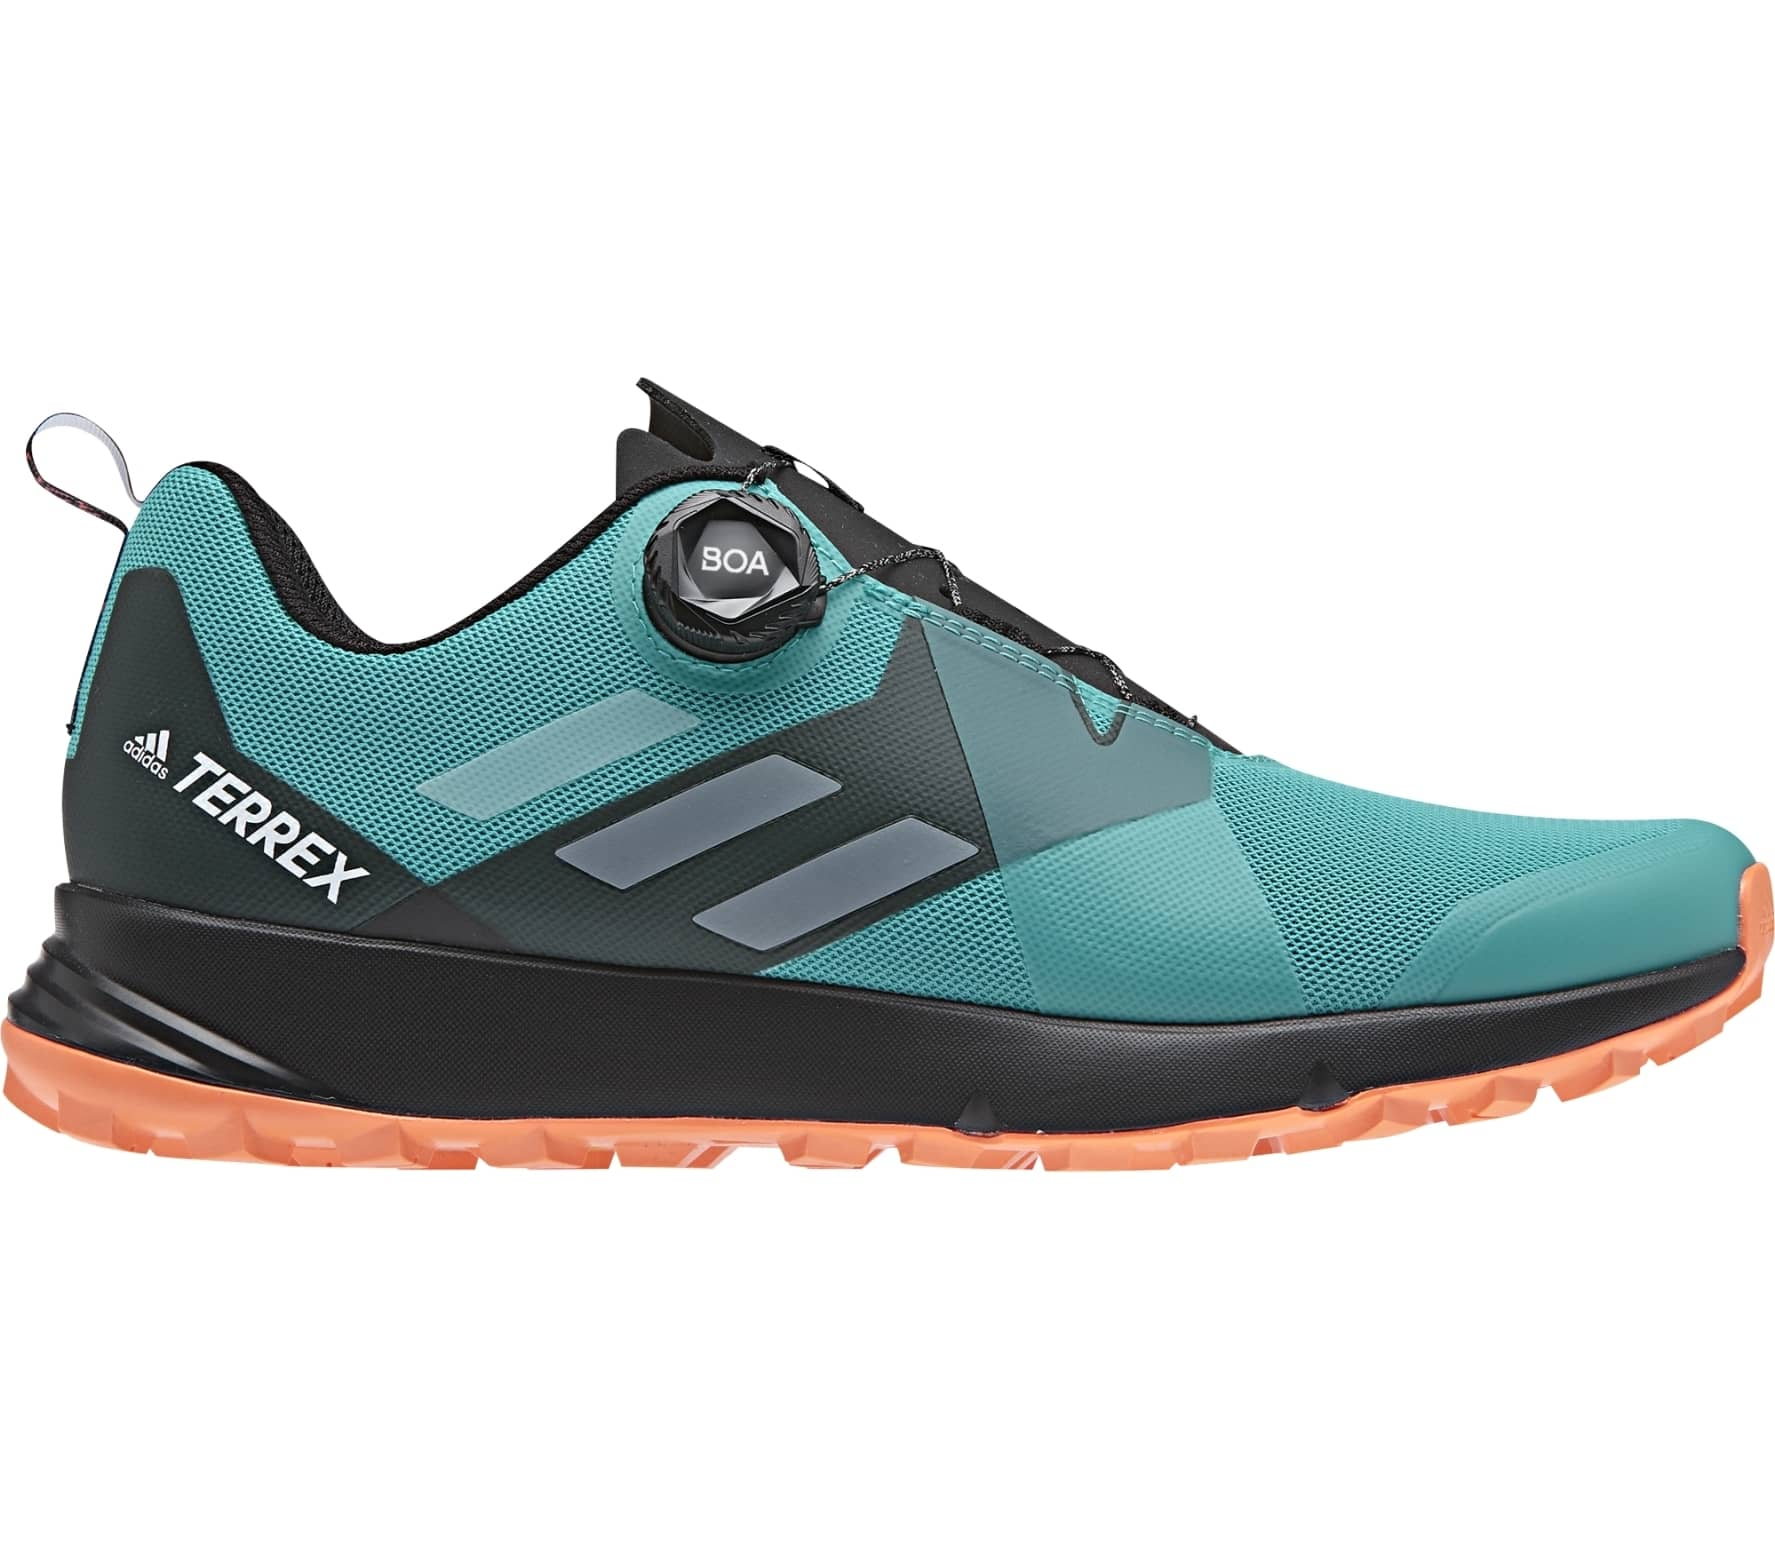 Adidas - Terrex Two Boa Men s hiking shoes (turquoise orange) - buy ... 50b8fef75